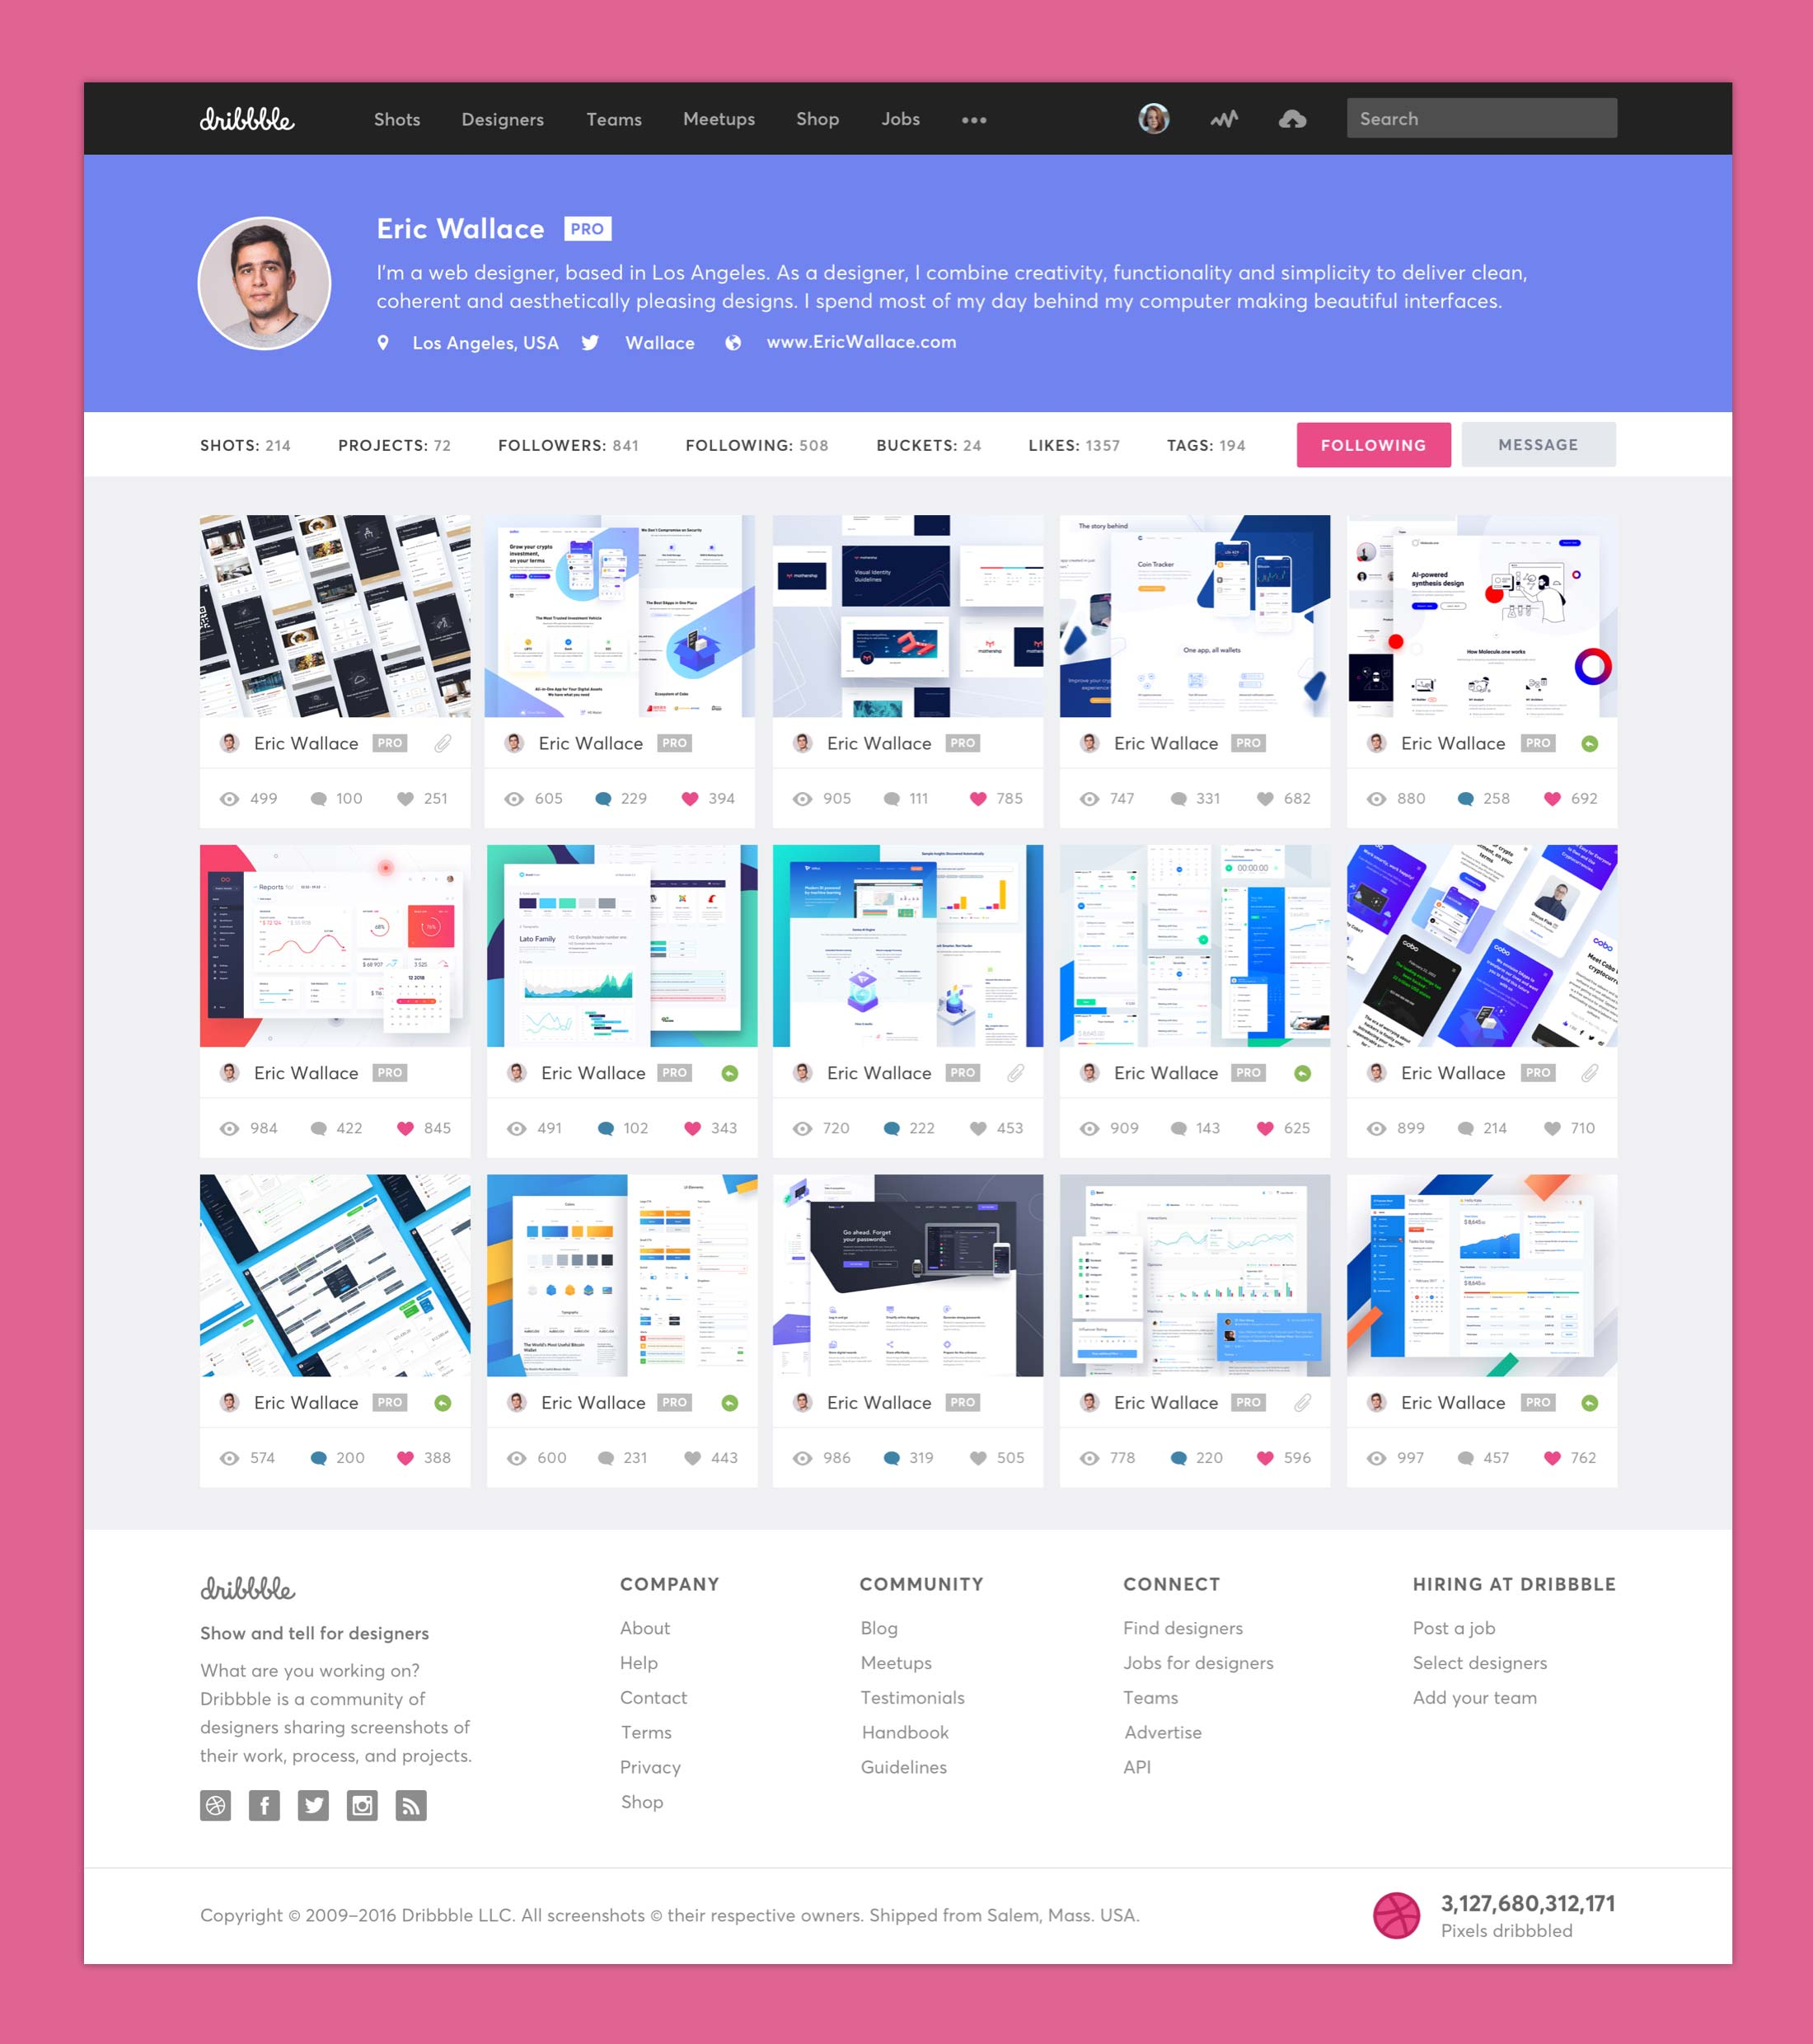 Dribbble Redesign - Profile Page